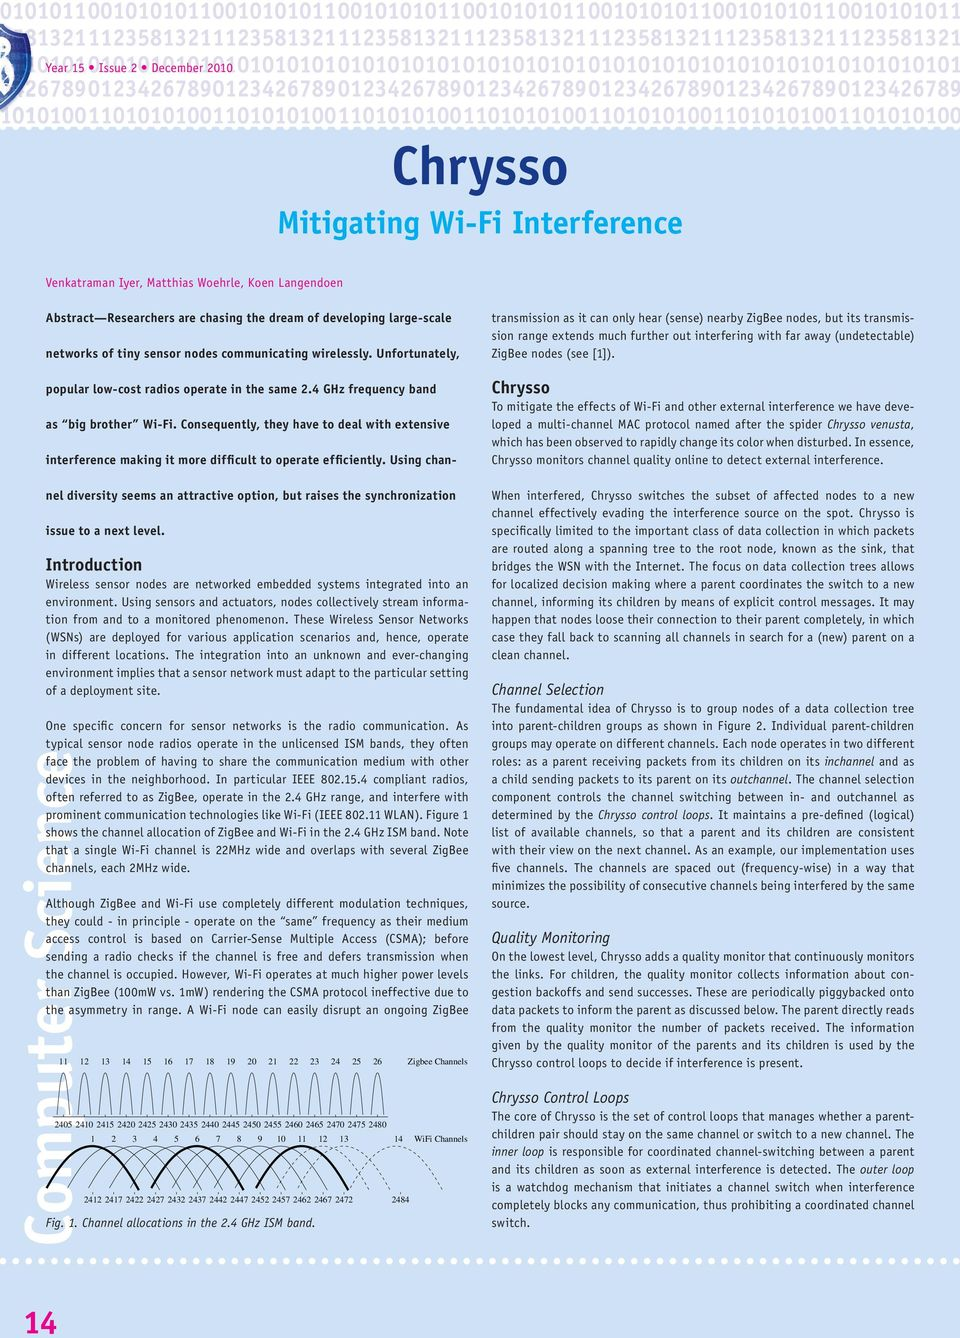 Chrysso To mitigate the effects of Wi-Fi and other external interference we have developed a multi-channel MAC protocol named after the spider Chrysso venusta, which has been observed to rapidly